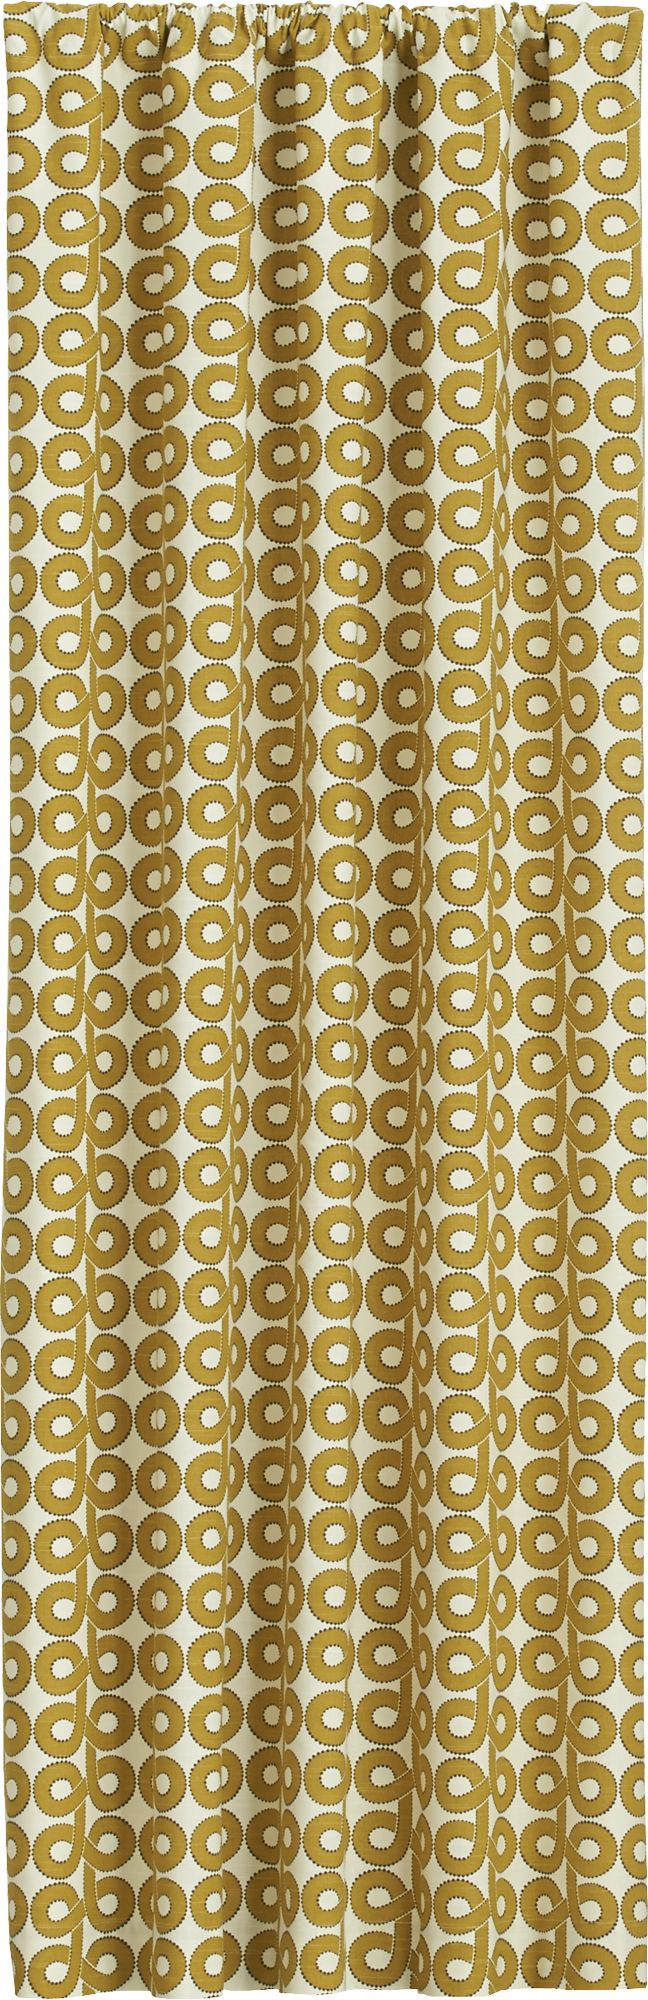 """Mid-century loops scale up to a contemporary graphic in a neutral palette with a pop of yellow.  Pattern is printed on slubby, textured cotton for added interest.  Lined curtain has a 3"""" rod pocket and a generous 3"""" hem.  Curtain accessories also available. 100% cottonLining is 70% polyester and 30% cotton3"""" rod pocket, 3"""" hemDry cleanMade in United Arab Emirates."""